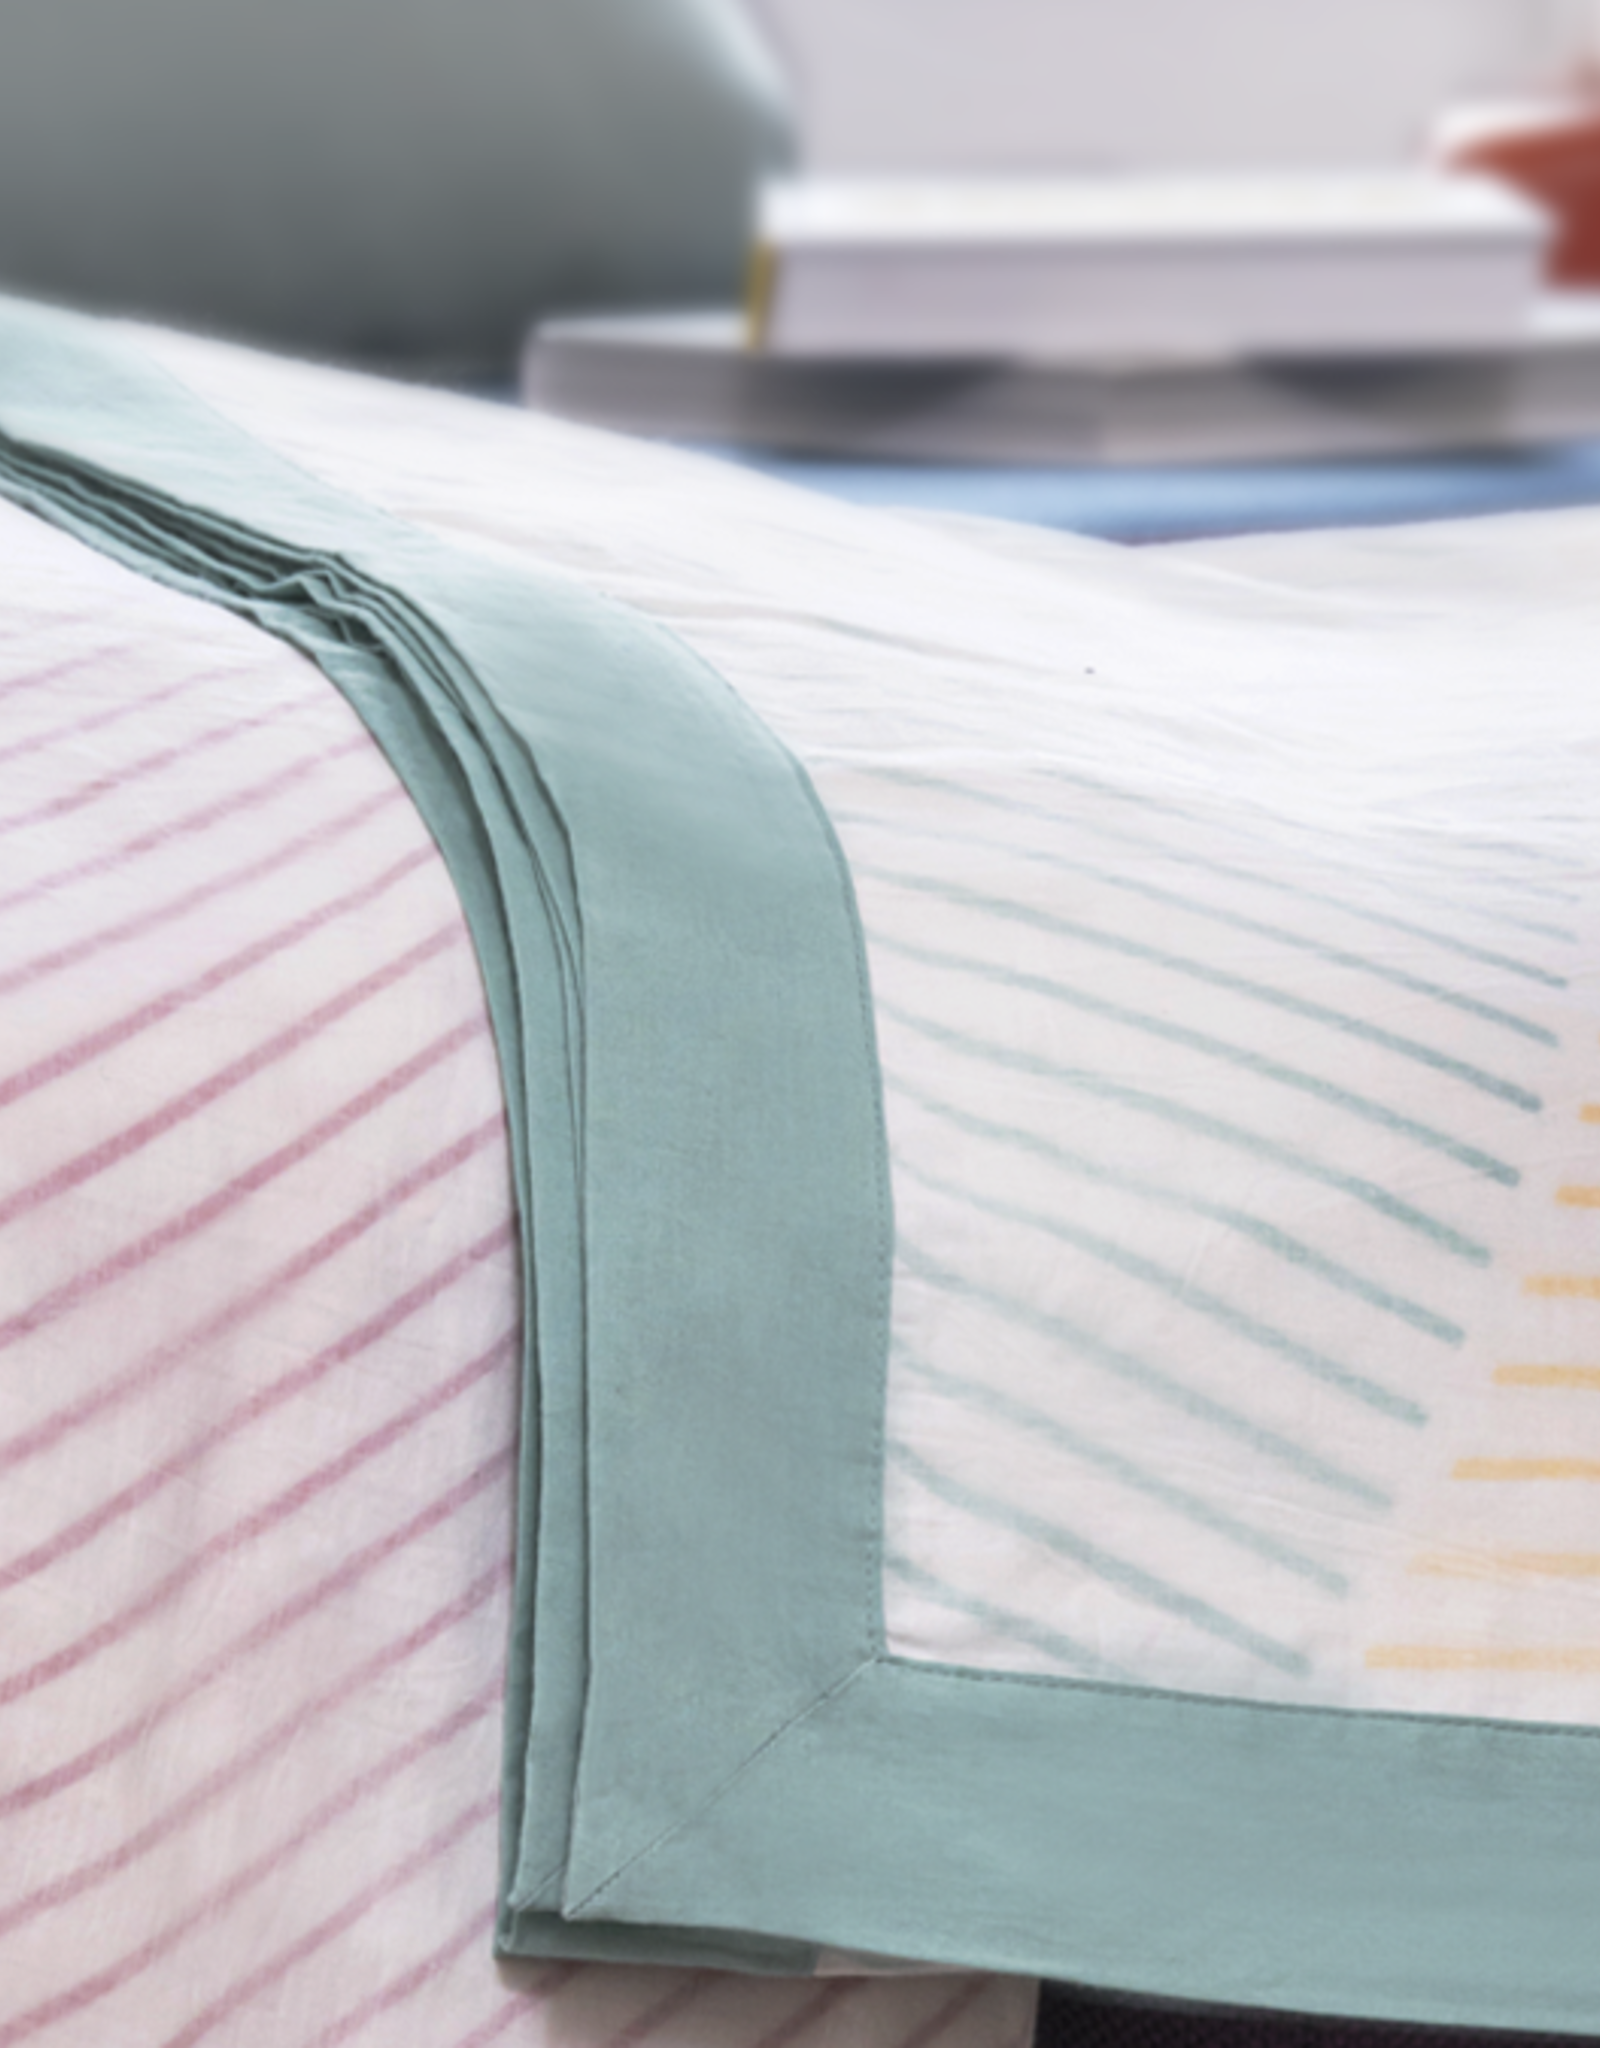 Zwitscherbox Breezy Blanket - Dohad - The soft and Light feel-good blanket